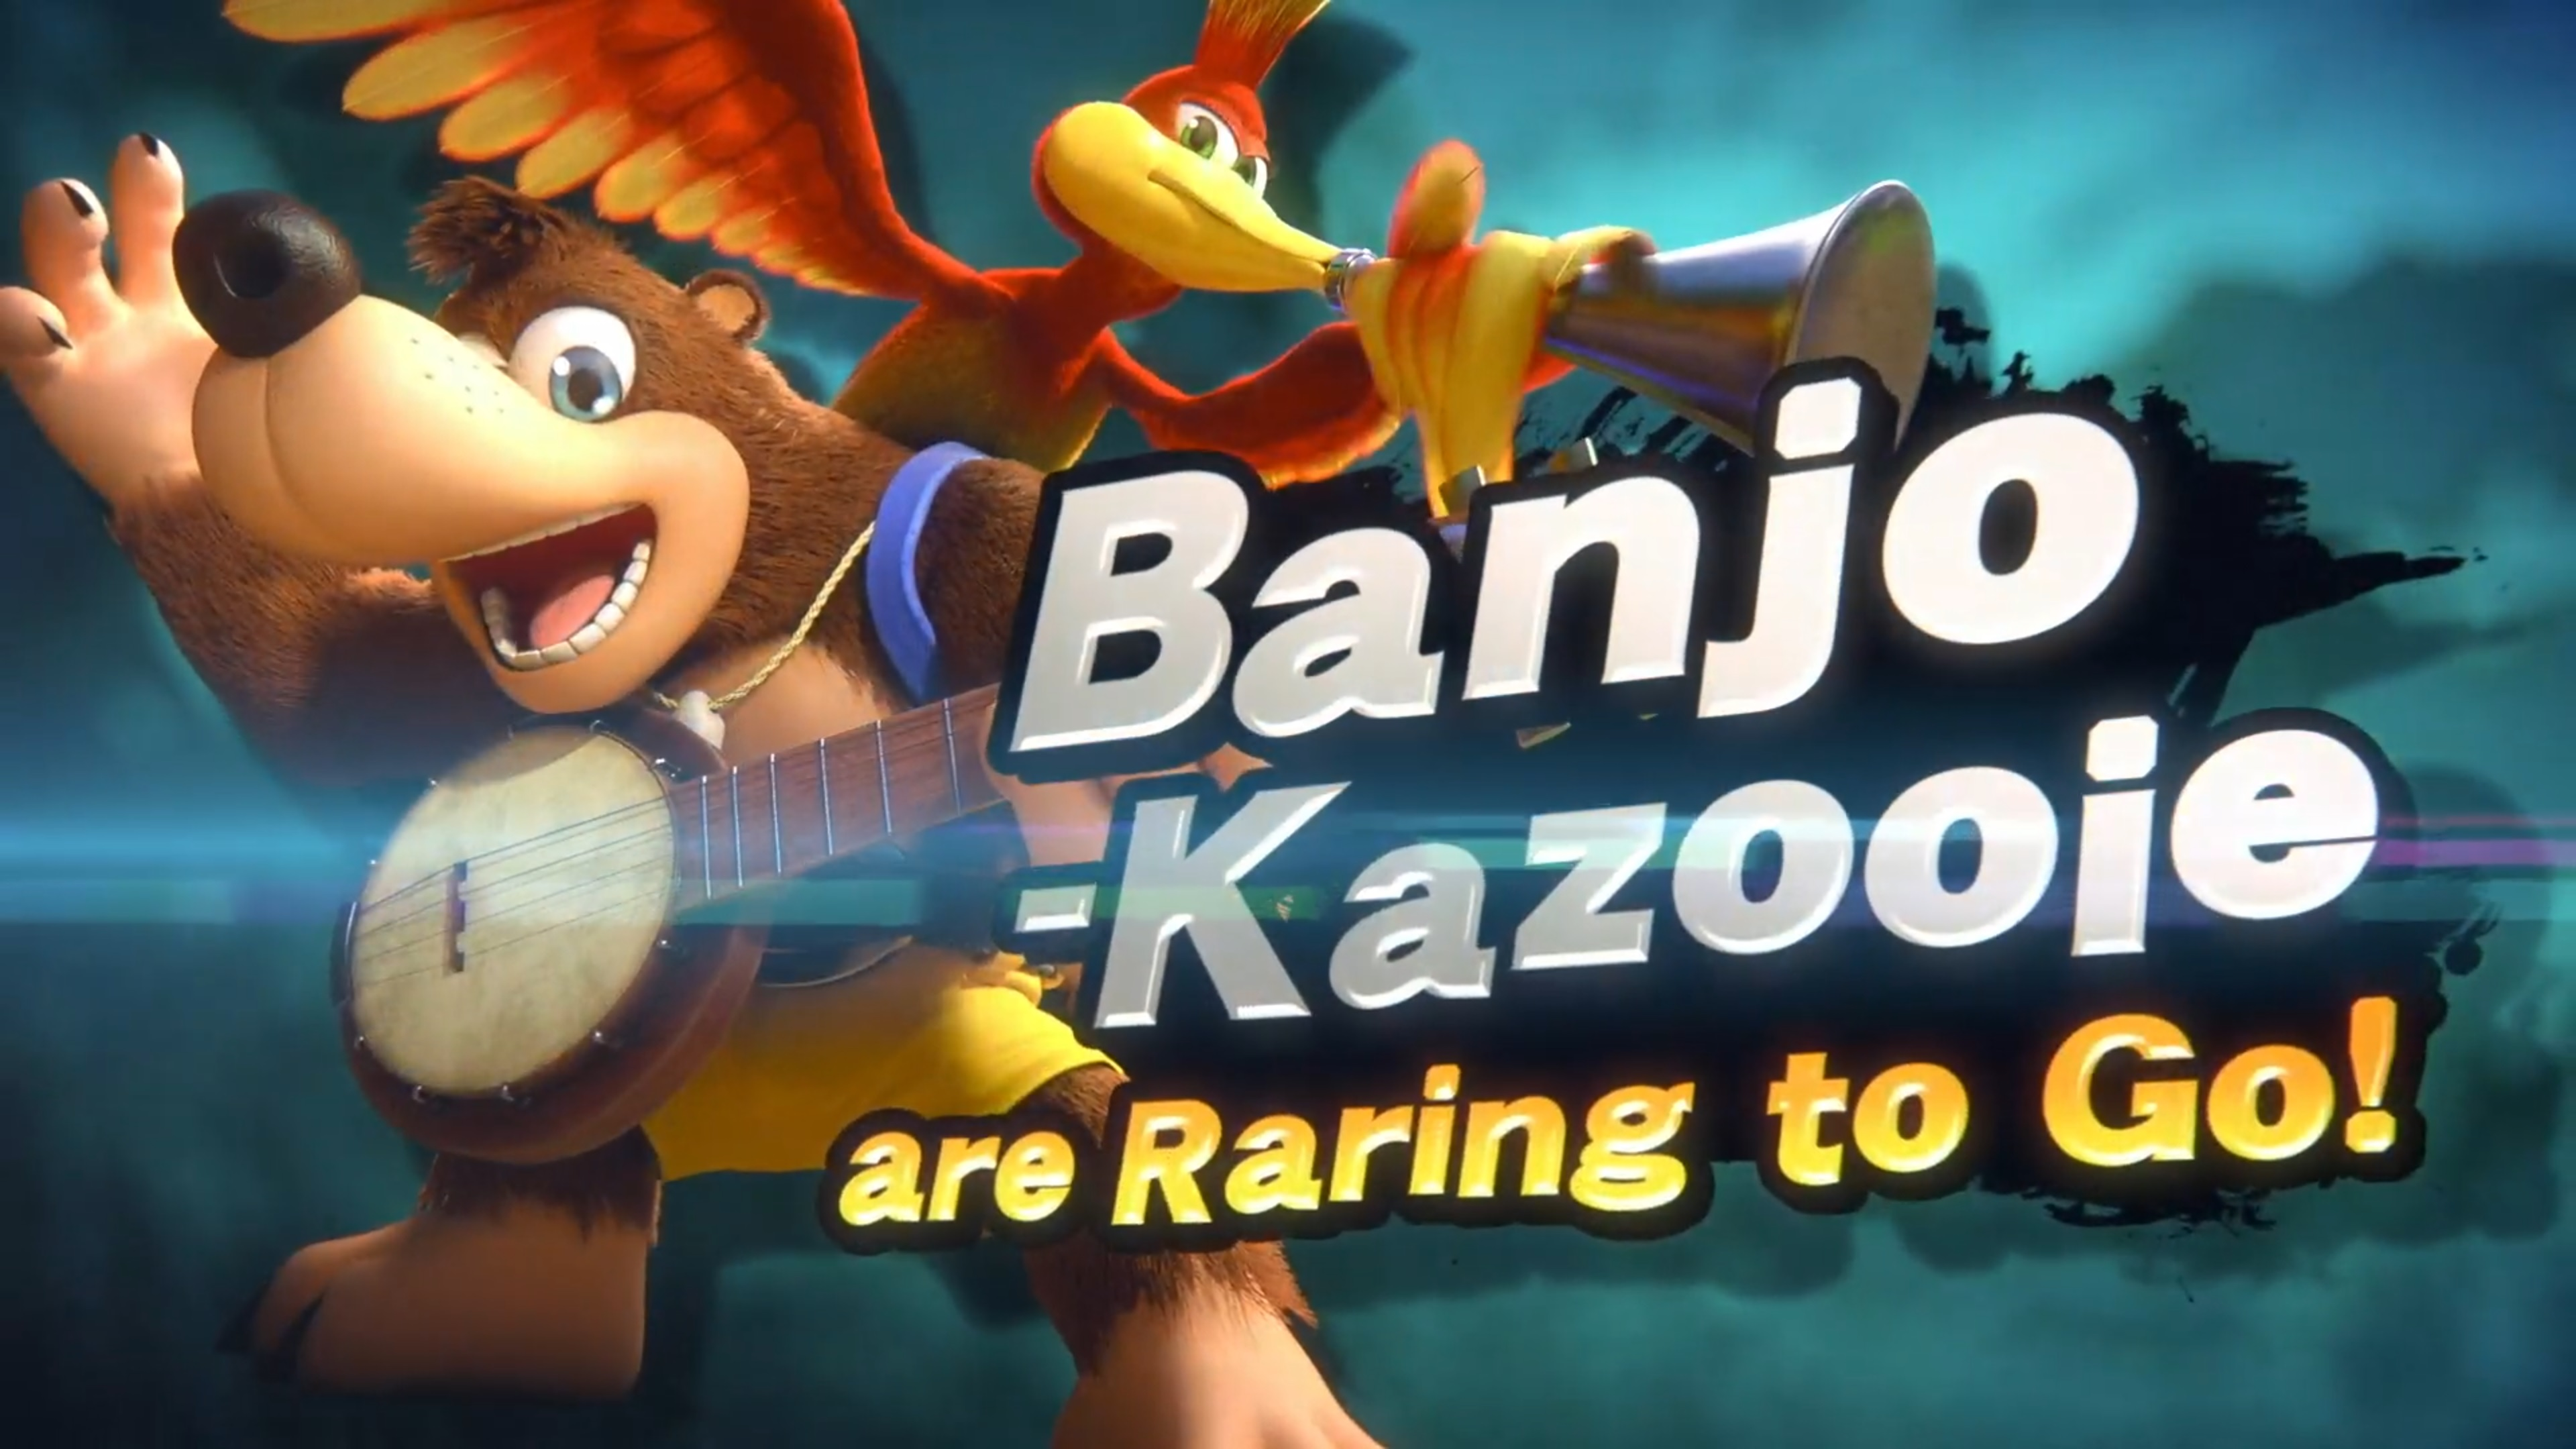 """Composer says Nintendo was """"surprised"""" by the reaction to Banjo-Kazooie in Smash Bros. Ultimate"""